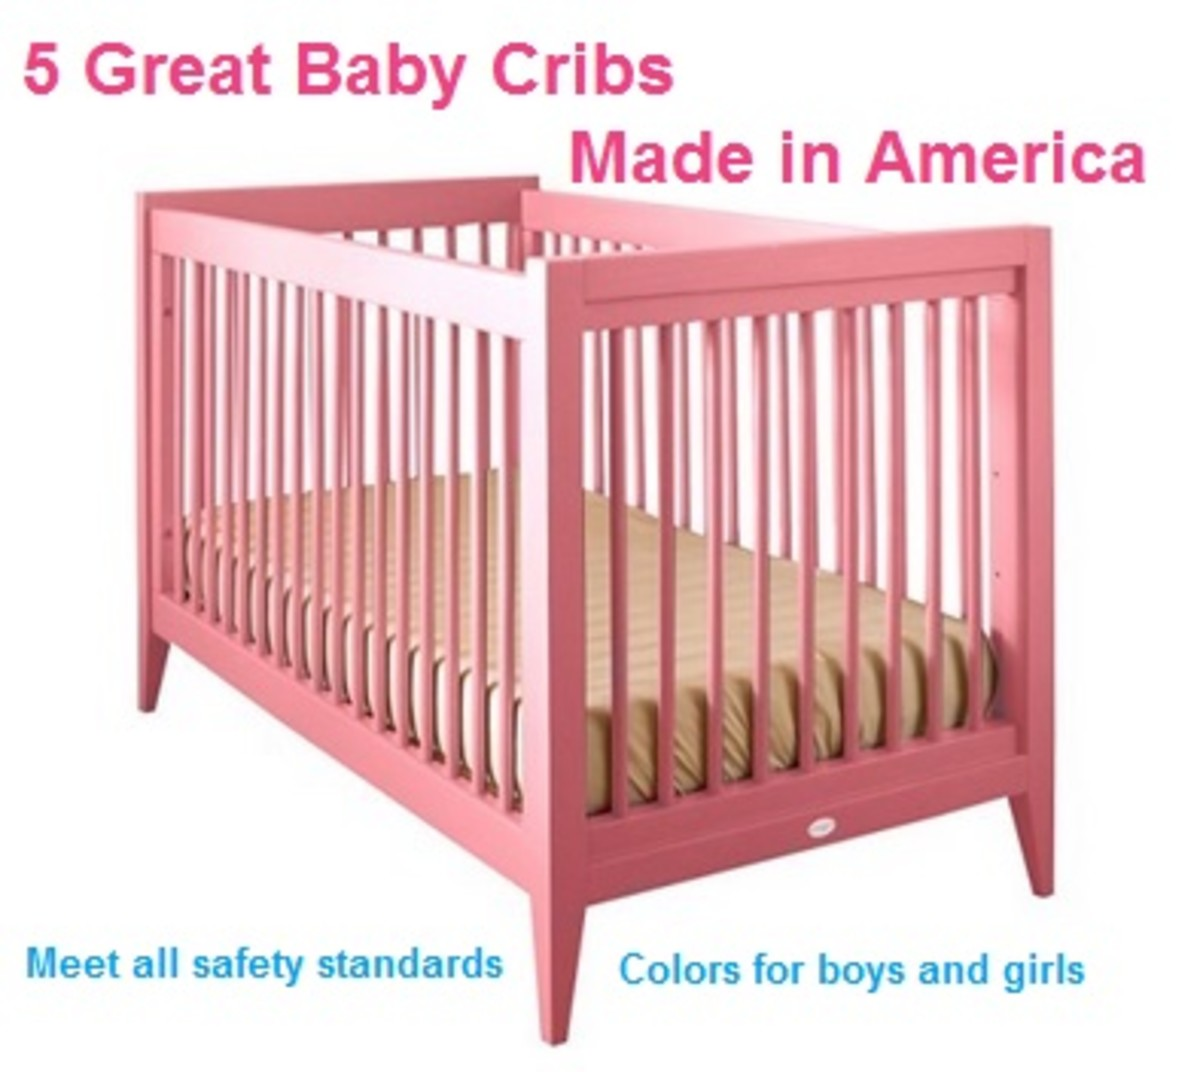 5 Beautiful Baby Cribs Made in the USA